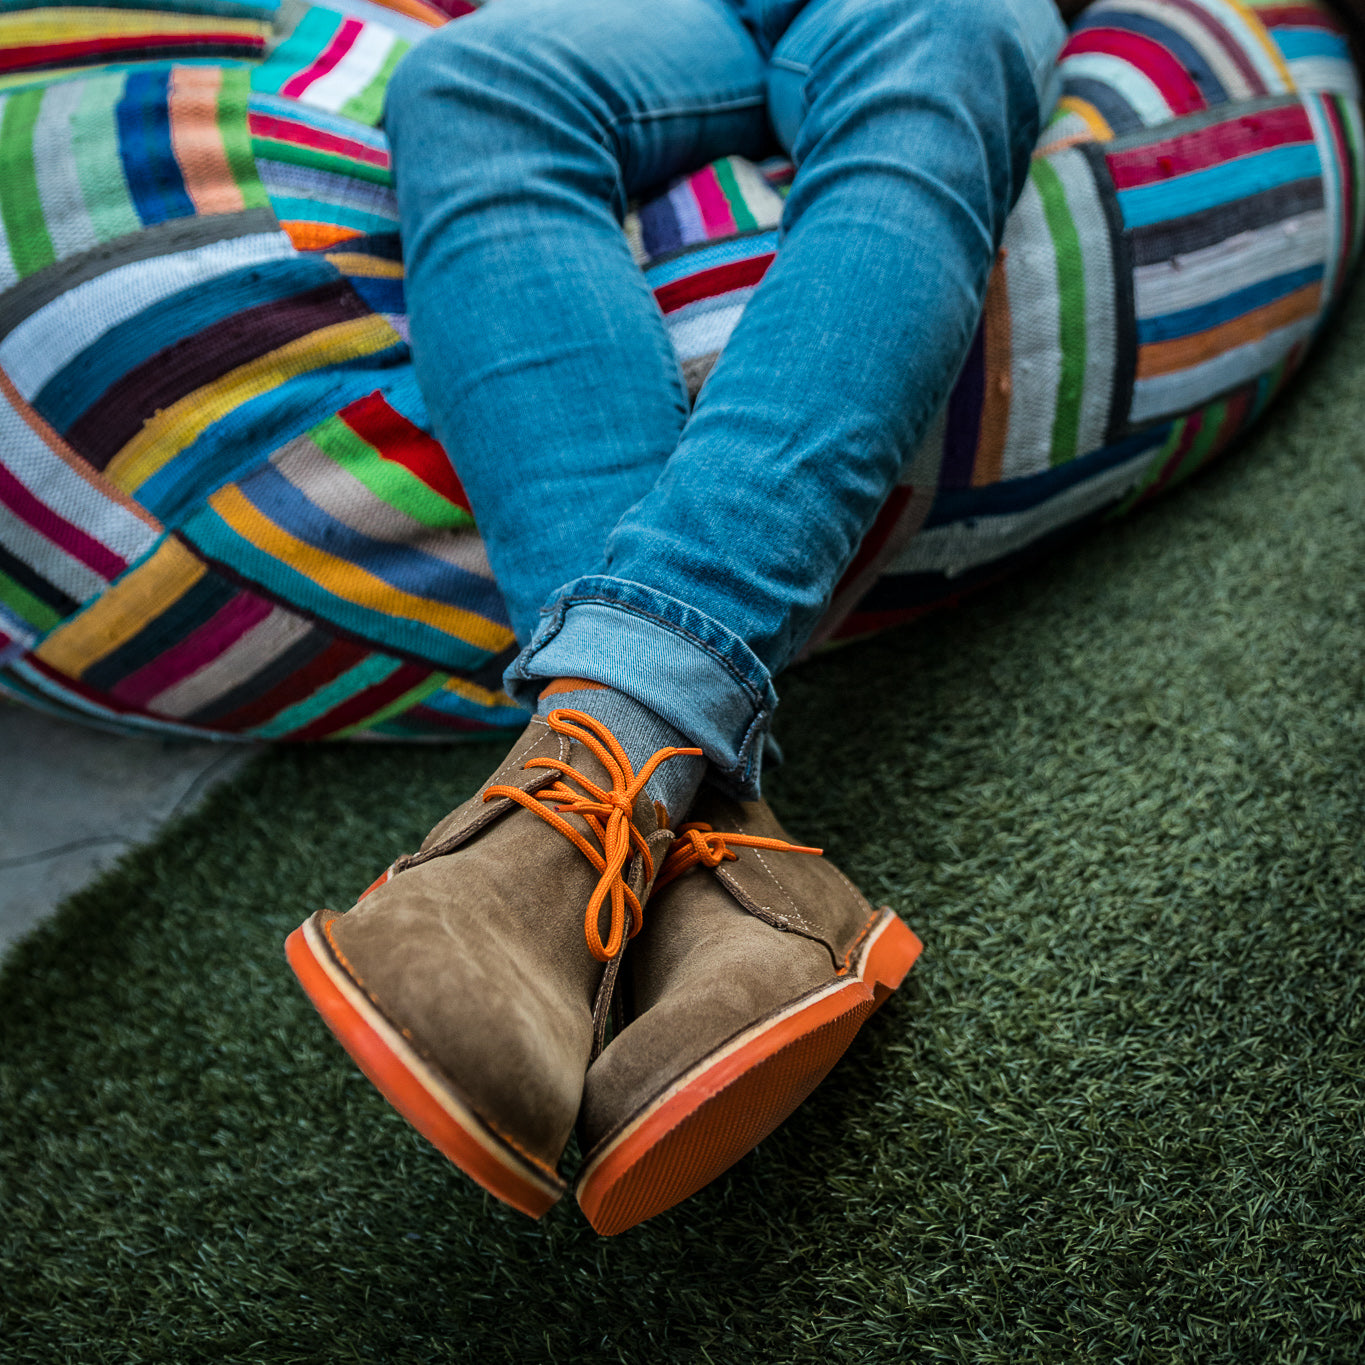 Veldskoen shoes and boots or known as vellies heritage boot ethically and sustainably handcrafted in South Africa sold in united states man sitting on a multi color beanbag wearing orange bloen heritage veldskoen and blue jeans sitting cross legged